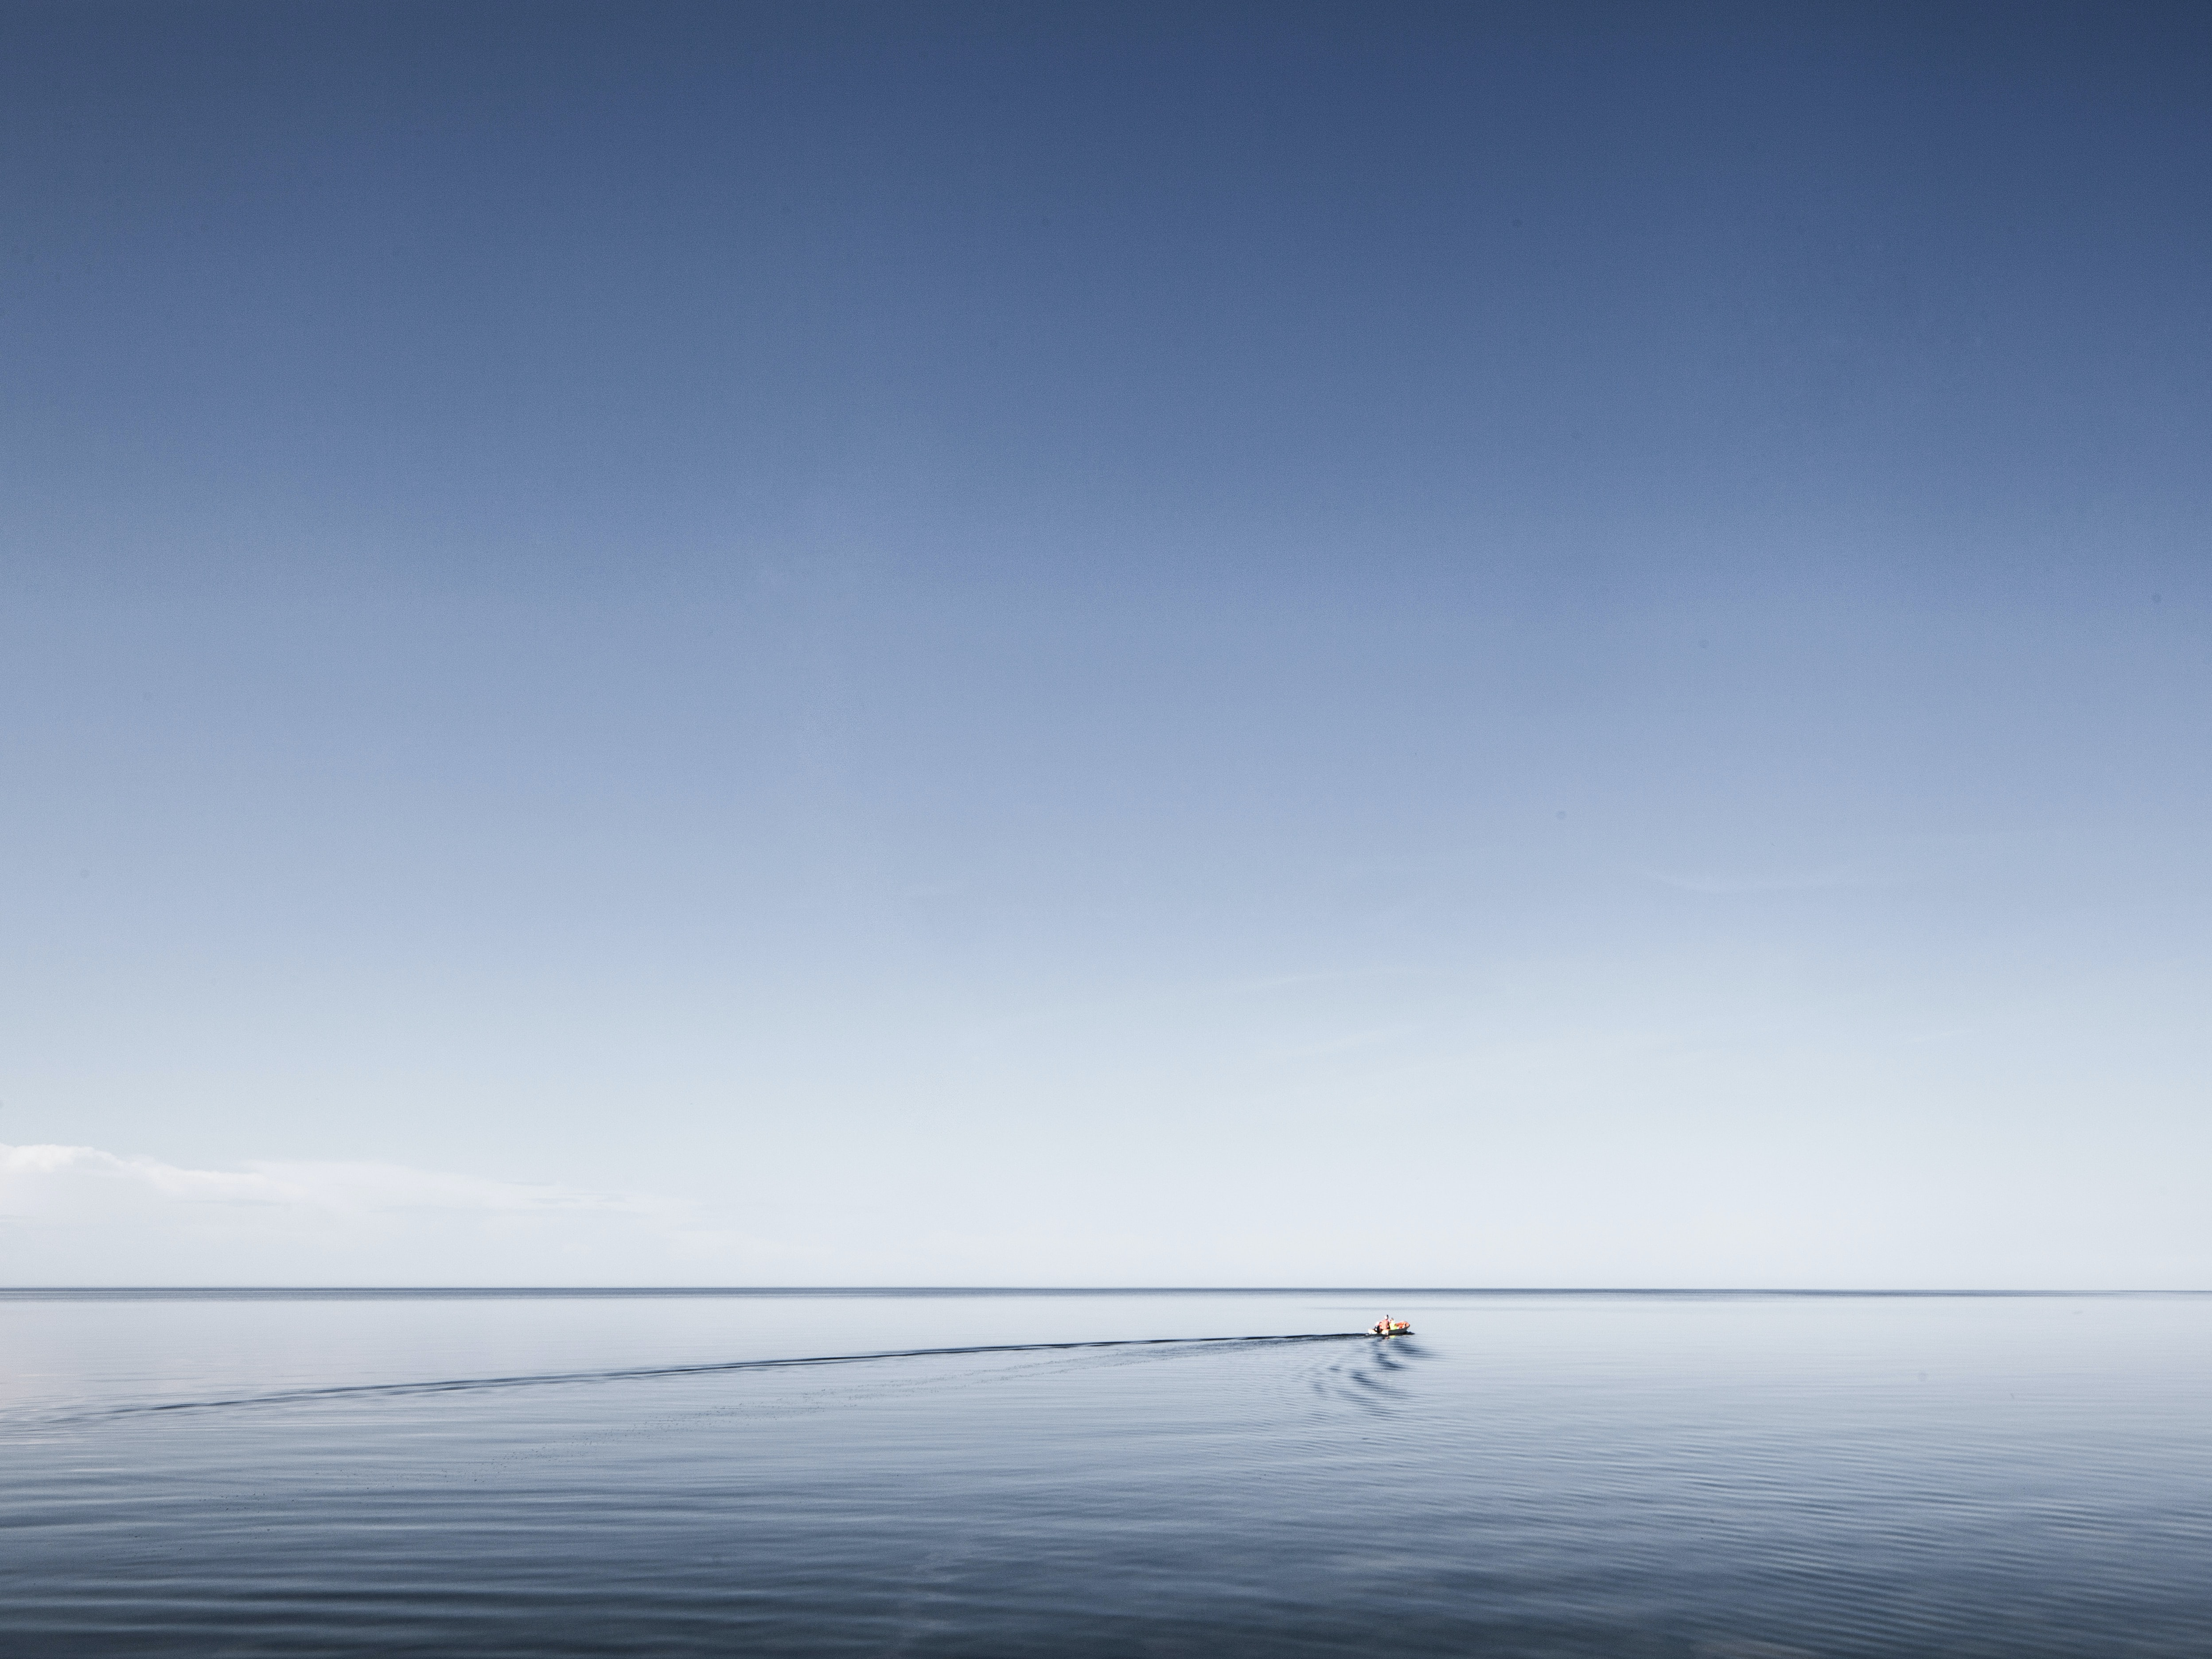 A small boat leaves ripples on the smooth surface of water stretching to the horizon